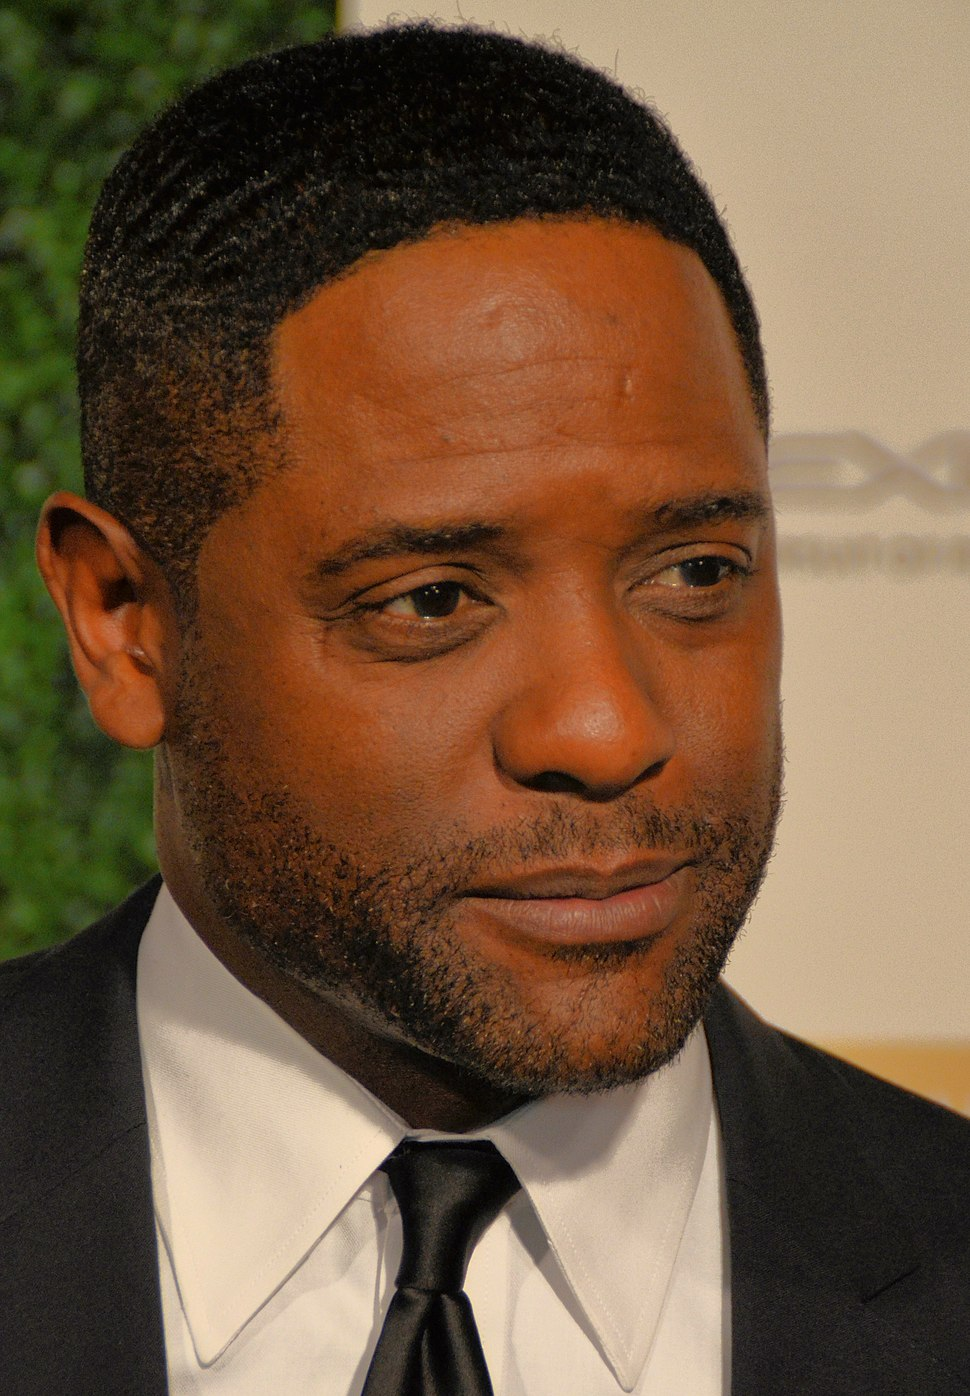 Blair Underwood 3rd Annual ICON MANN POWER 50 event - Feb 2015 (cropped)